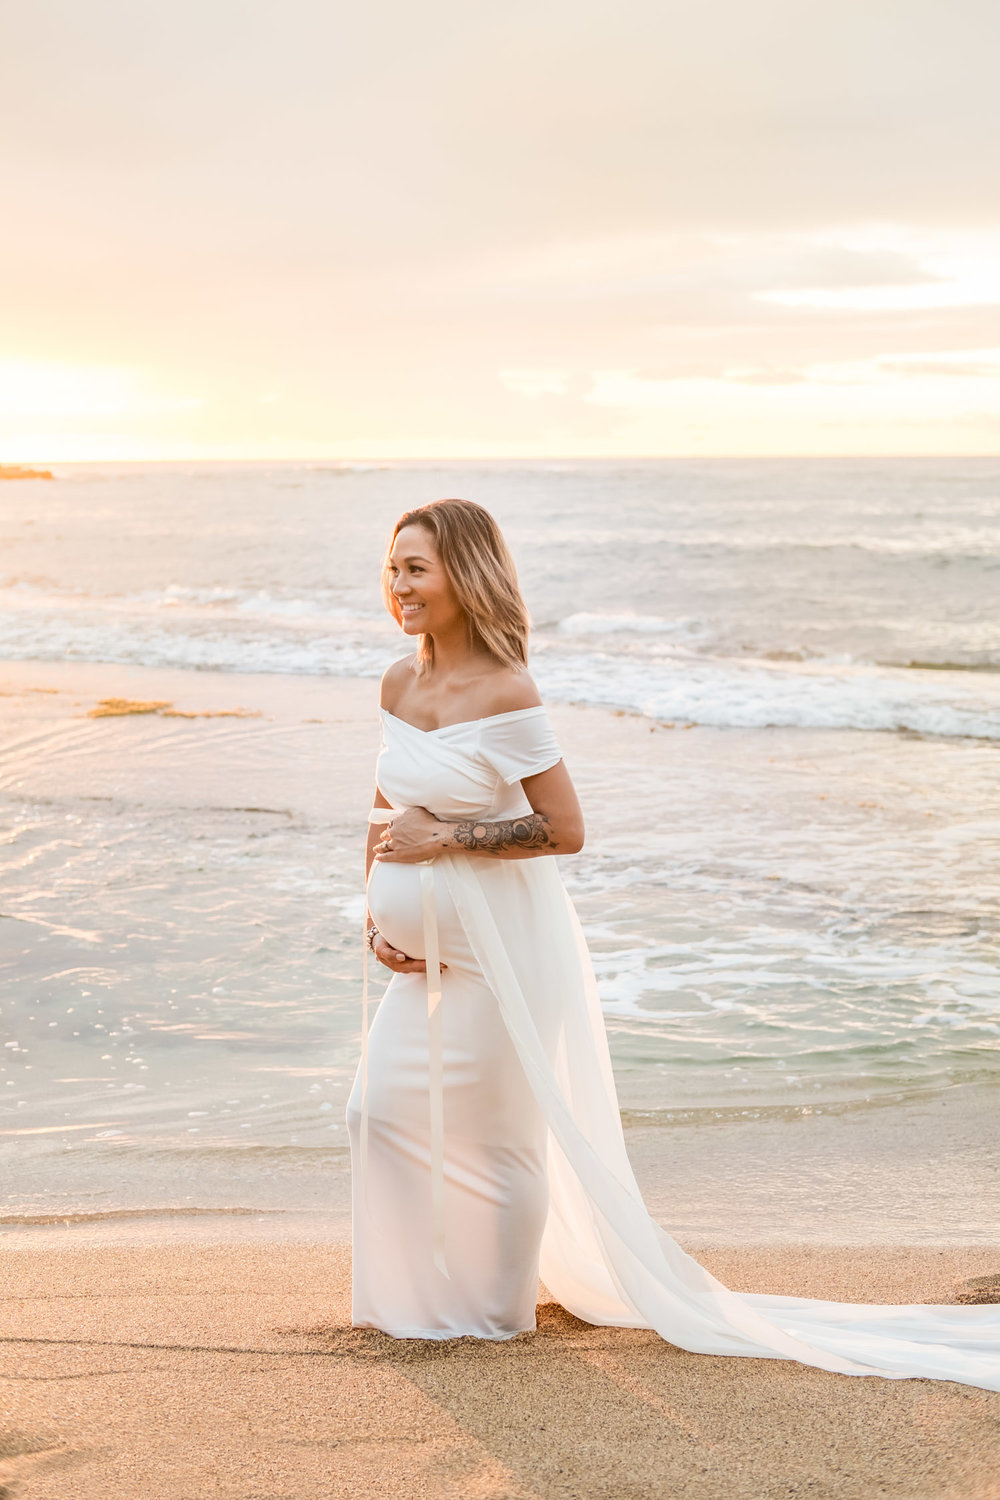 Kauai Maternity Photography.  Sexy Mama Maternity. Hawaii. Beach maternity session.